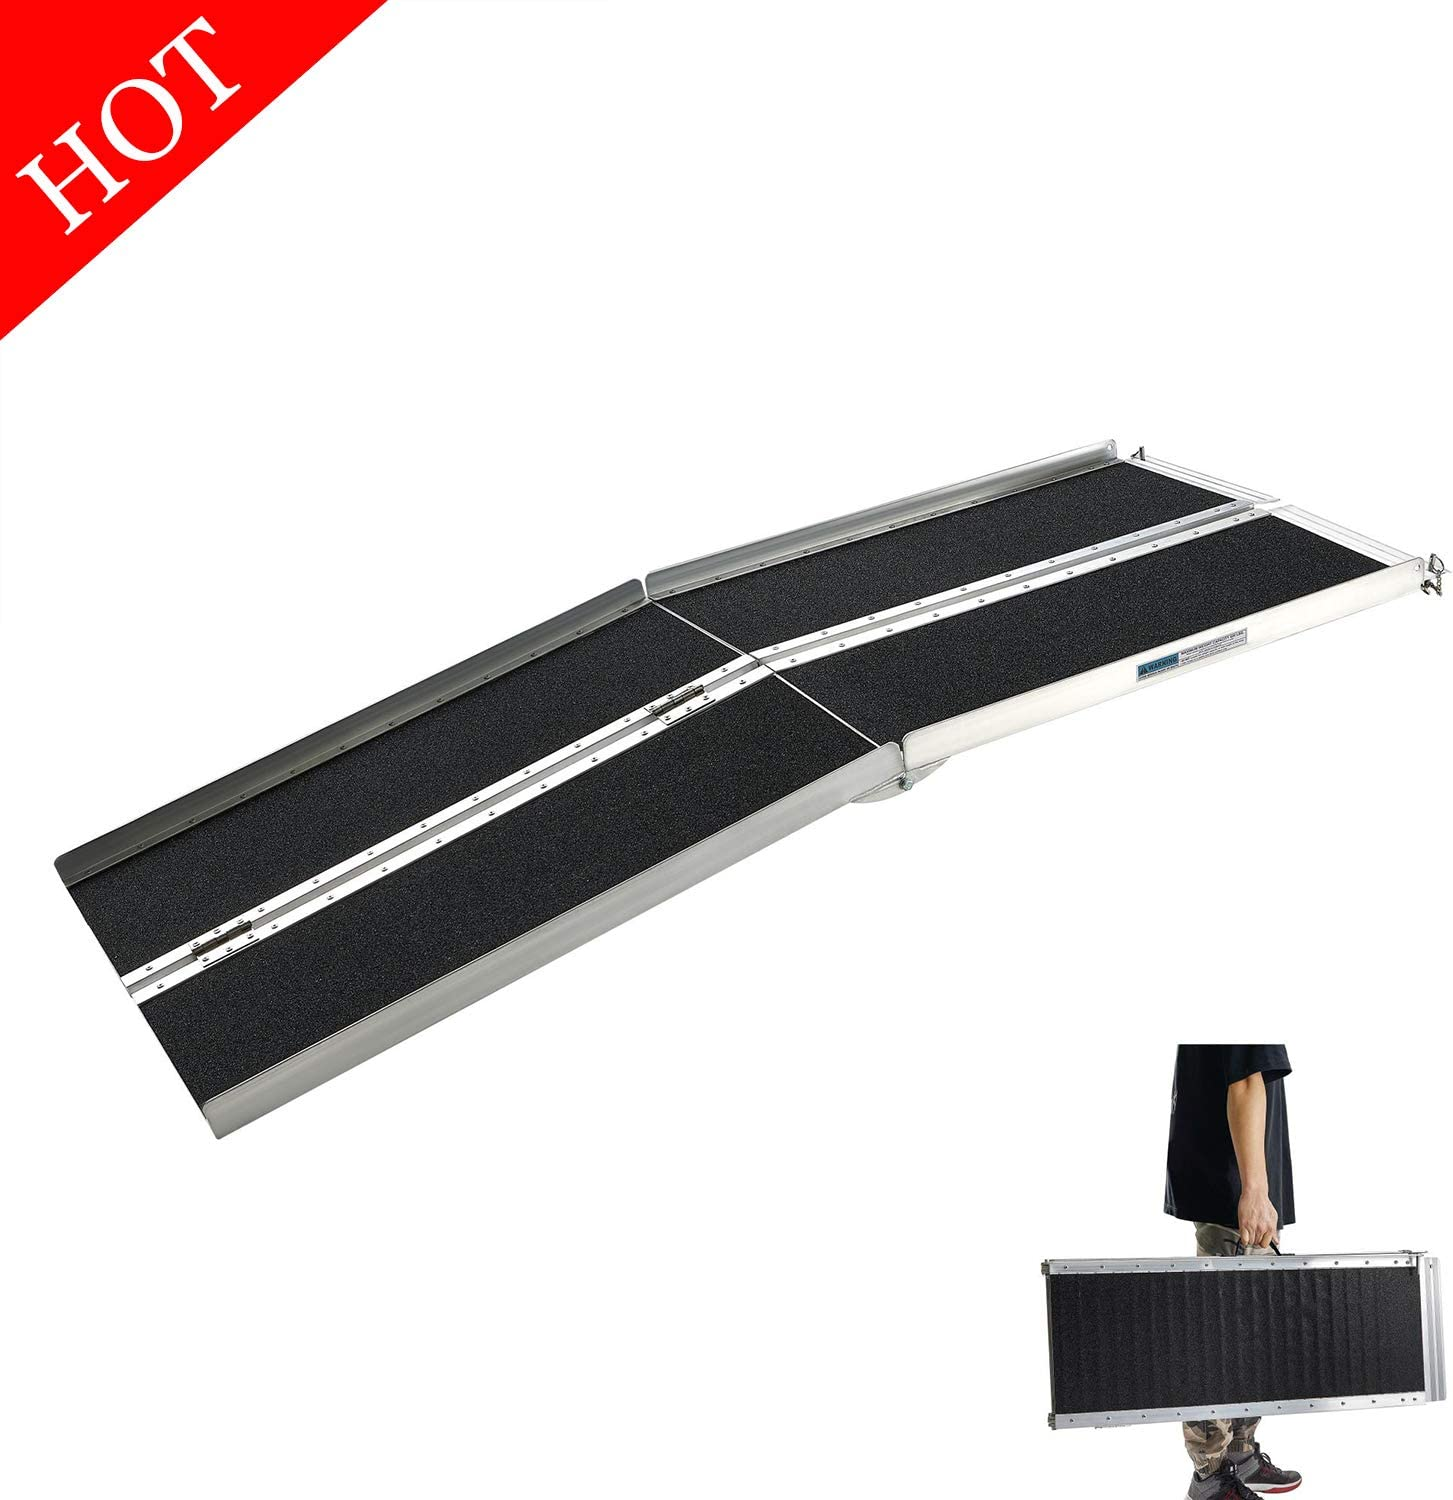 Wheelchair Ramps 5FT, gardhom Extra Wide 31.3' Folding Portable Antiskid Loading Ramp for Scooters Lawn Mower Doorways Steps